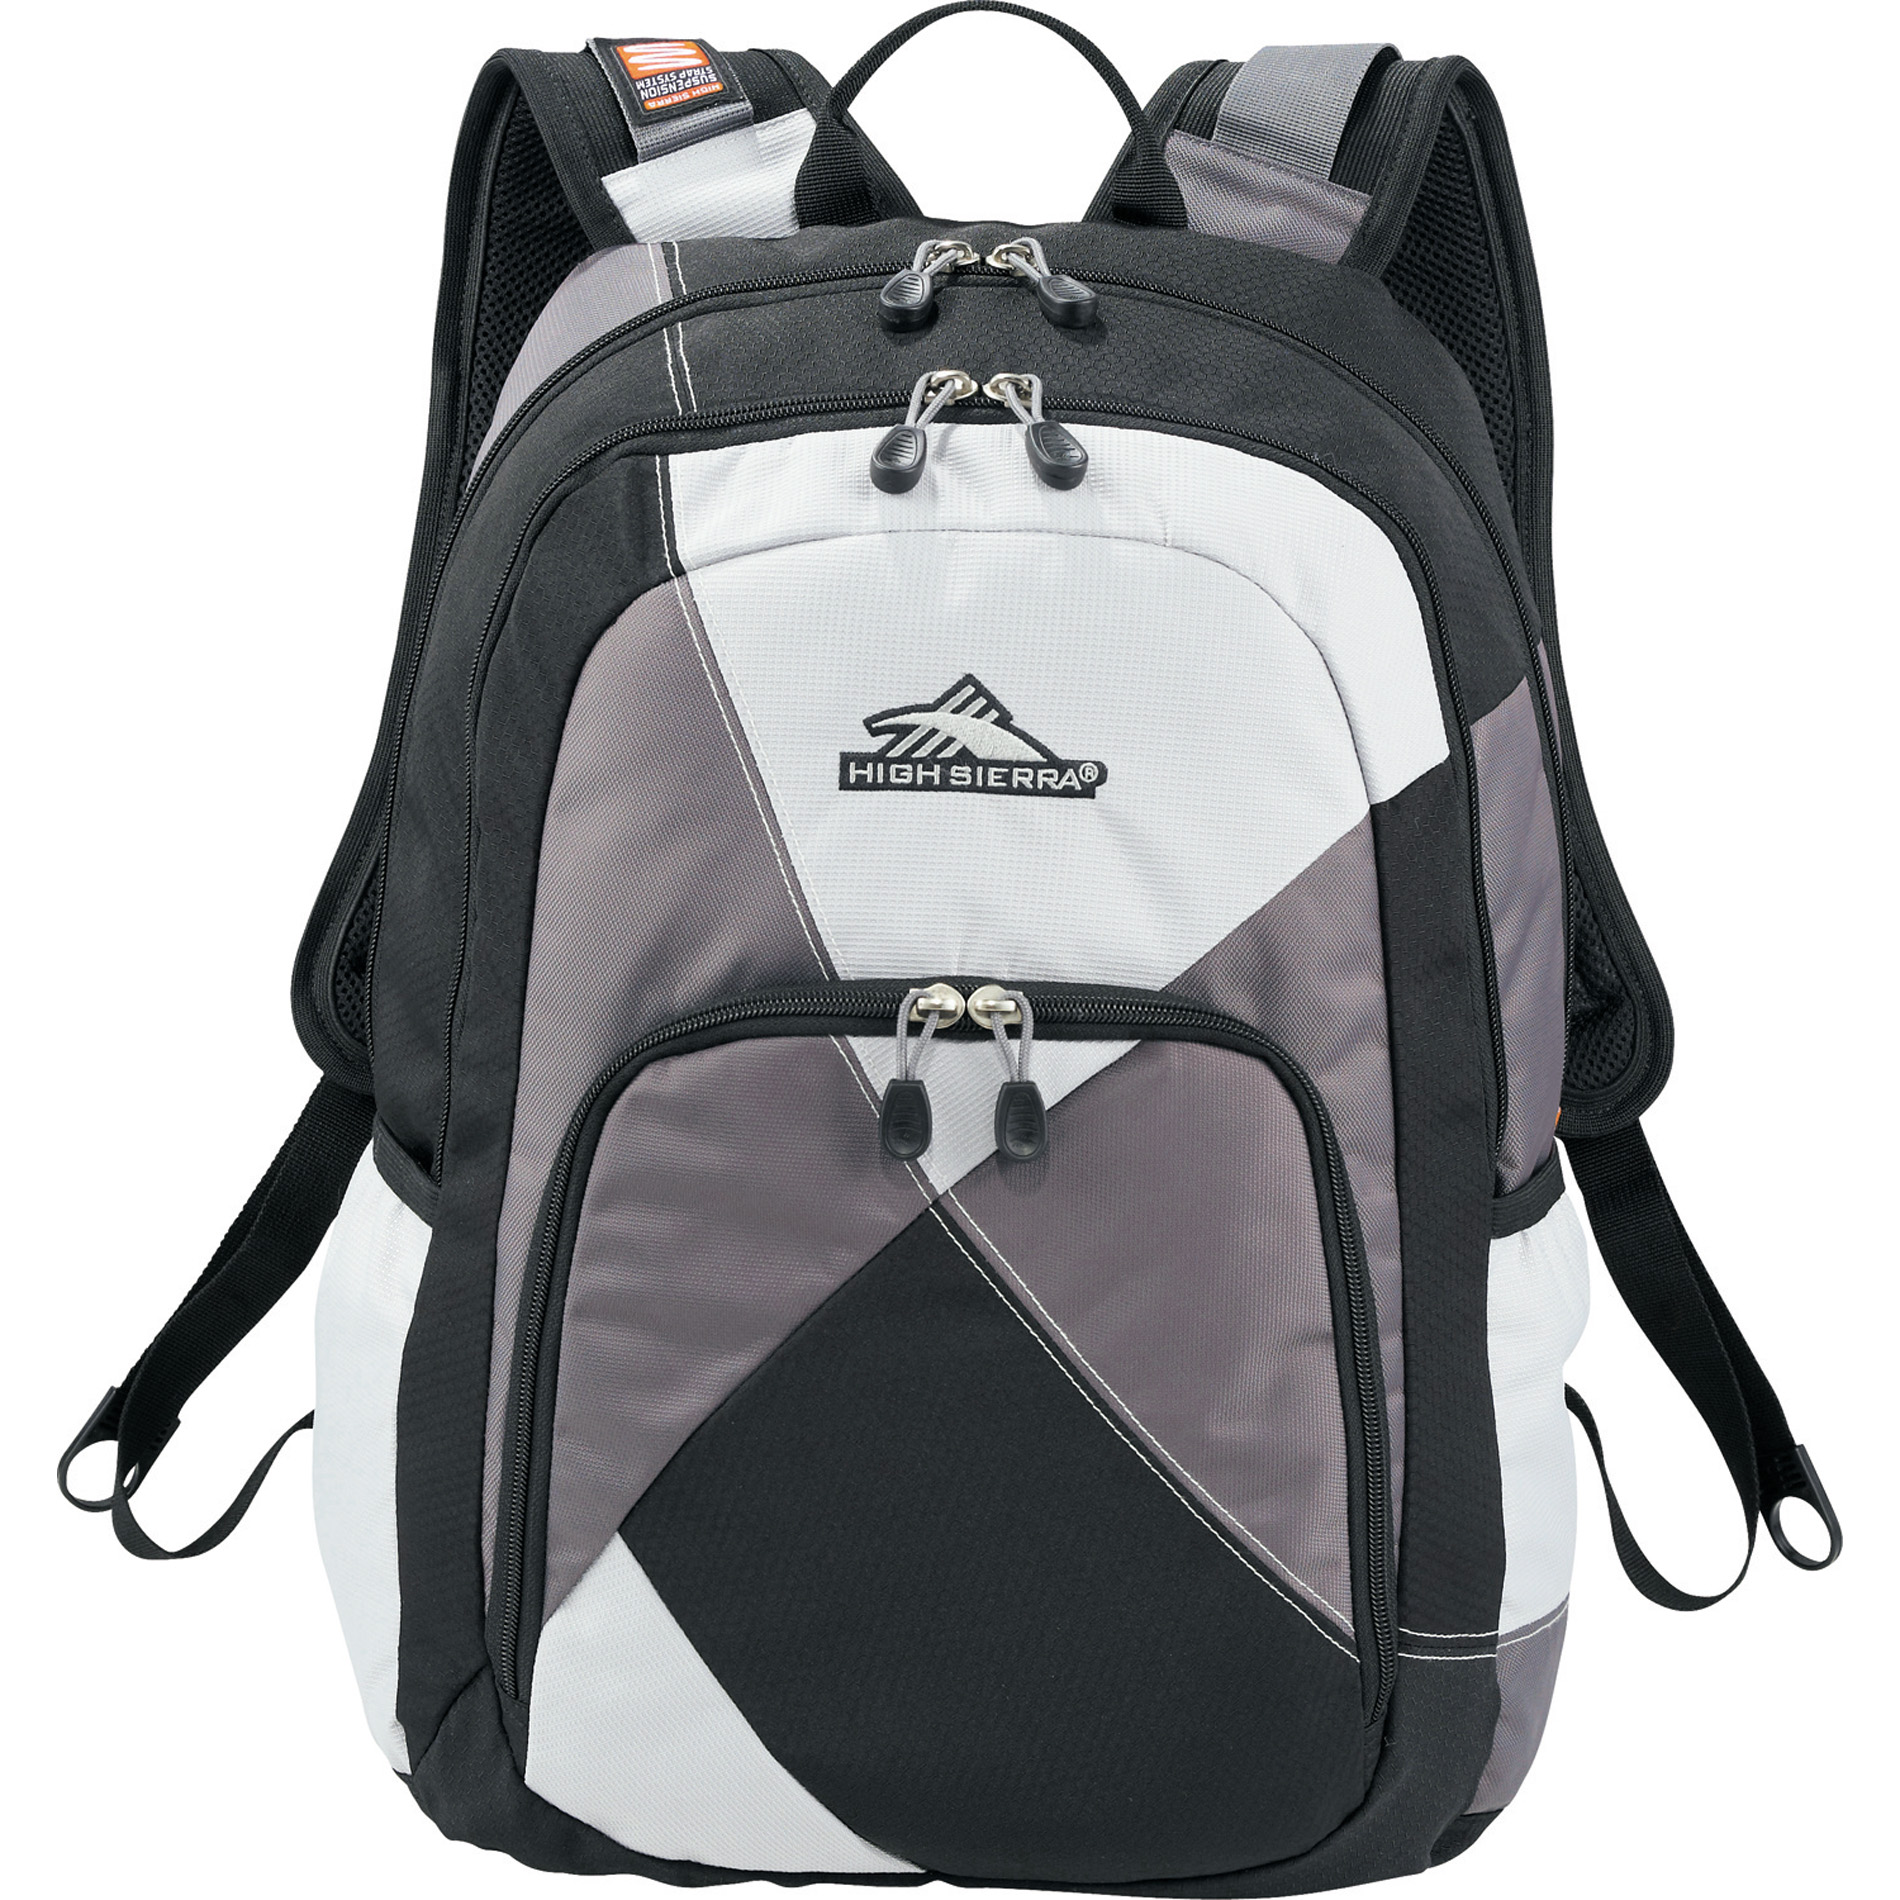 "High Sierra 8051-08 - Berserk 17"" Computer Backpack"